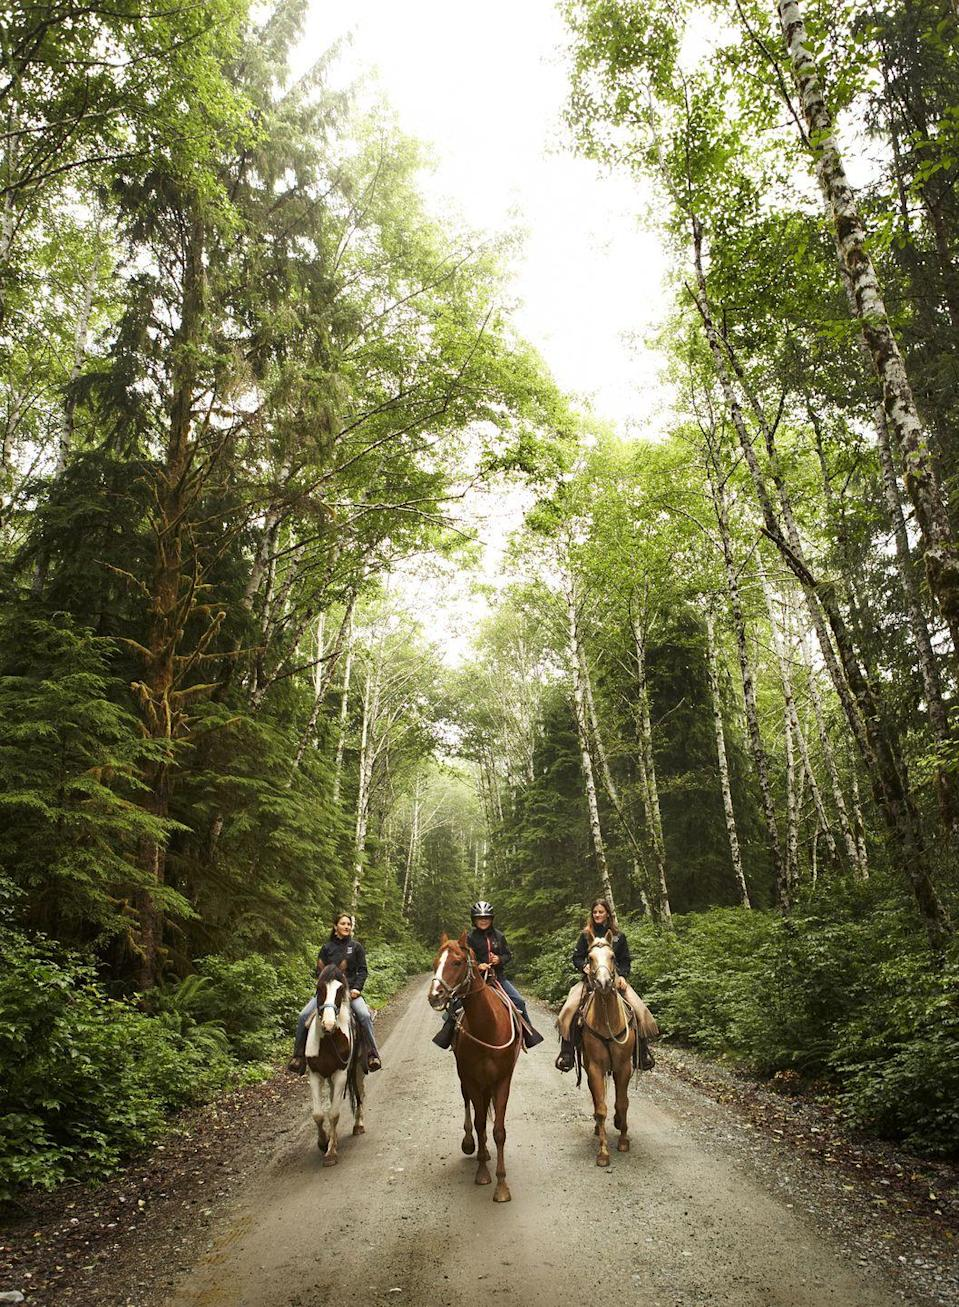 "<p>Hoping to spend your birthday outdoors? Instead of walking around like any other day, consider making it extra special with a horseback ride with your closest friends.</p><p><a class=""link rapid-noclick-resp"" href=""https://go.redirectingat.com?id=74968X1596630&url=https%3A%2F%2Fwww.walmart.com%2Fip%2FScoop-Women-s-Sparkle-Cowboy-Hat%2F914261030&sref=https%3A%2F%2Fwww.thepioneerwoman.com%2Fhome-lifestyle%2Fentertaining%2Fg34192298%2F50th-birthday-party-ideas%2F"" rel=""nofollow noopener"" target=""_blank"" data-ylk=""slk:SHOP COWBOY HATS"">SHOP COWBOY HATS</a></p>"